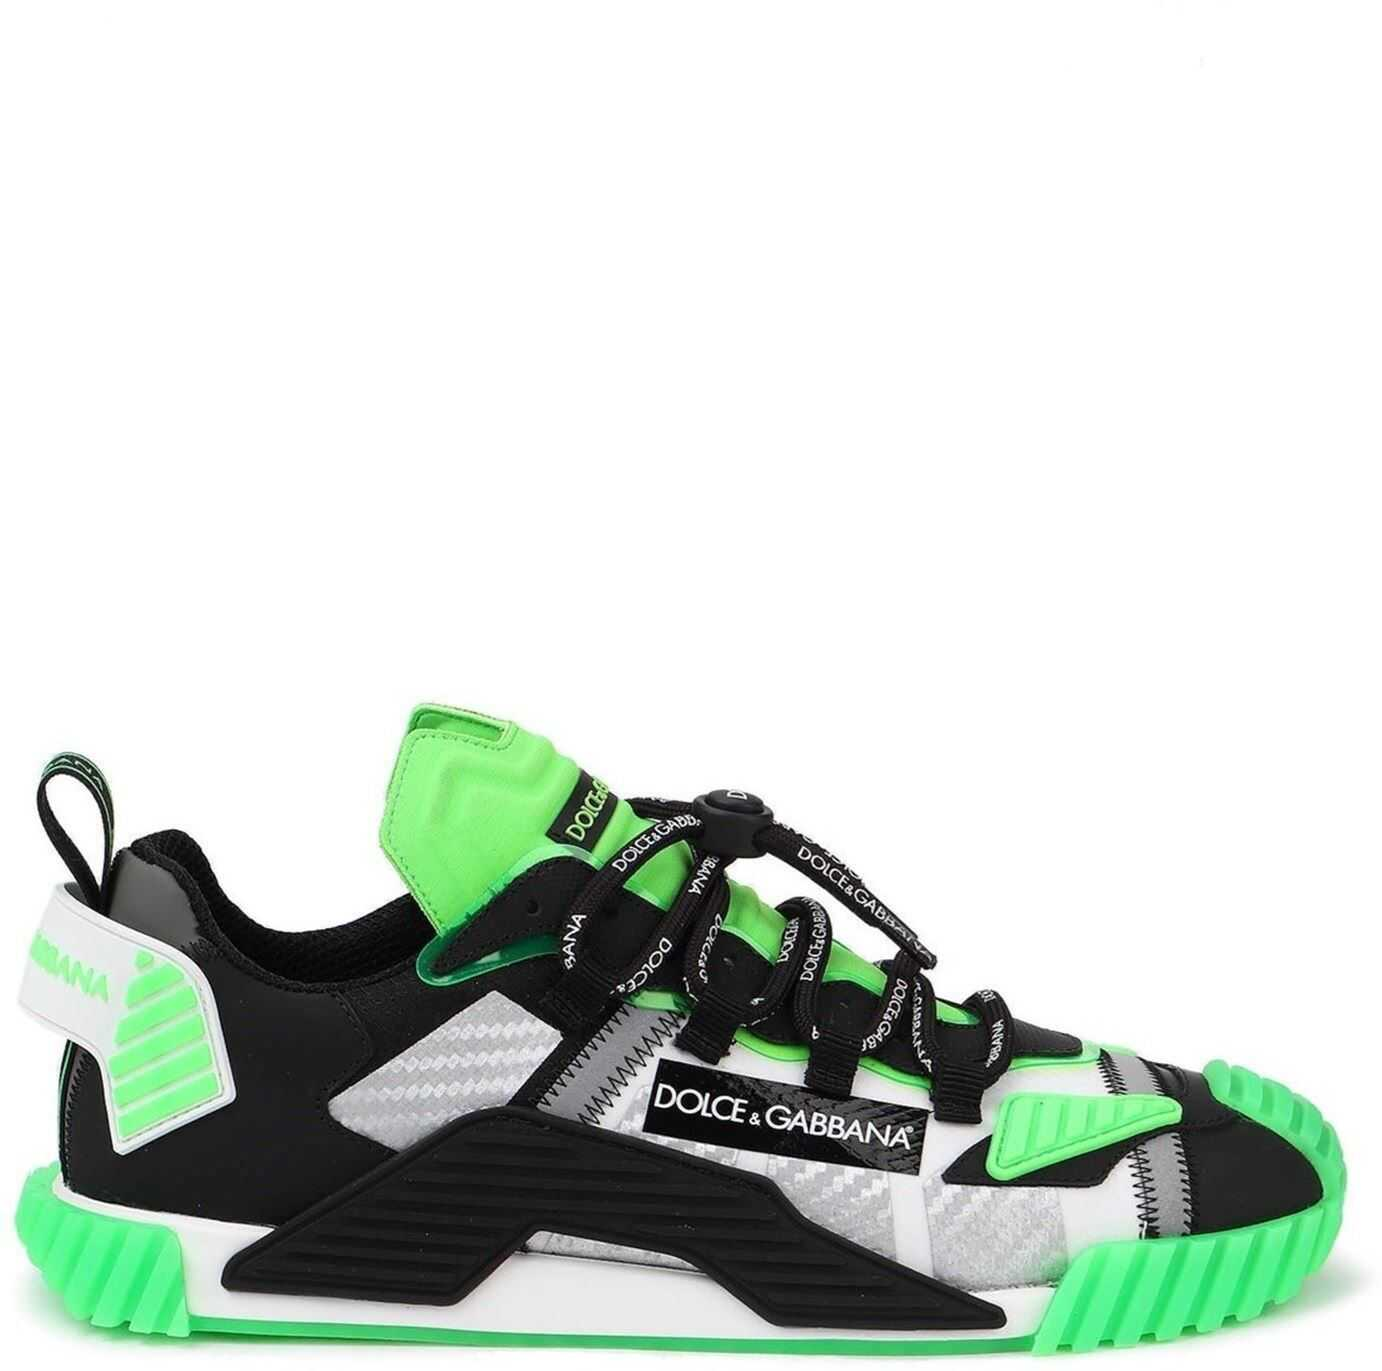 Dolce & Gabbana Ns1 Mixed Materials Neon Sneakers Multi